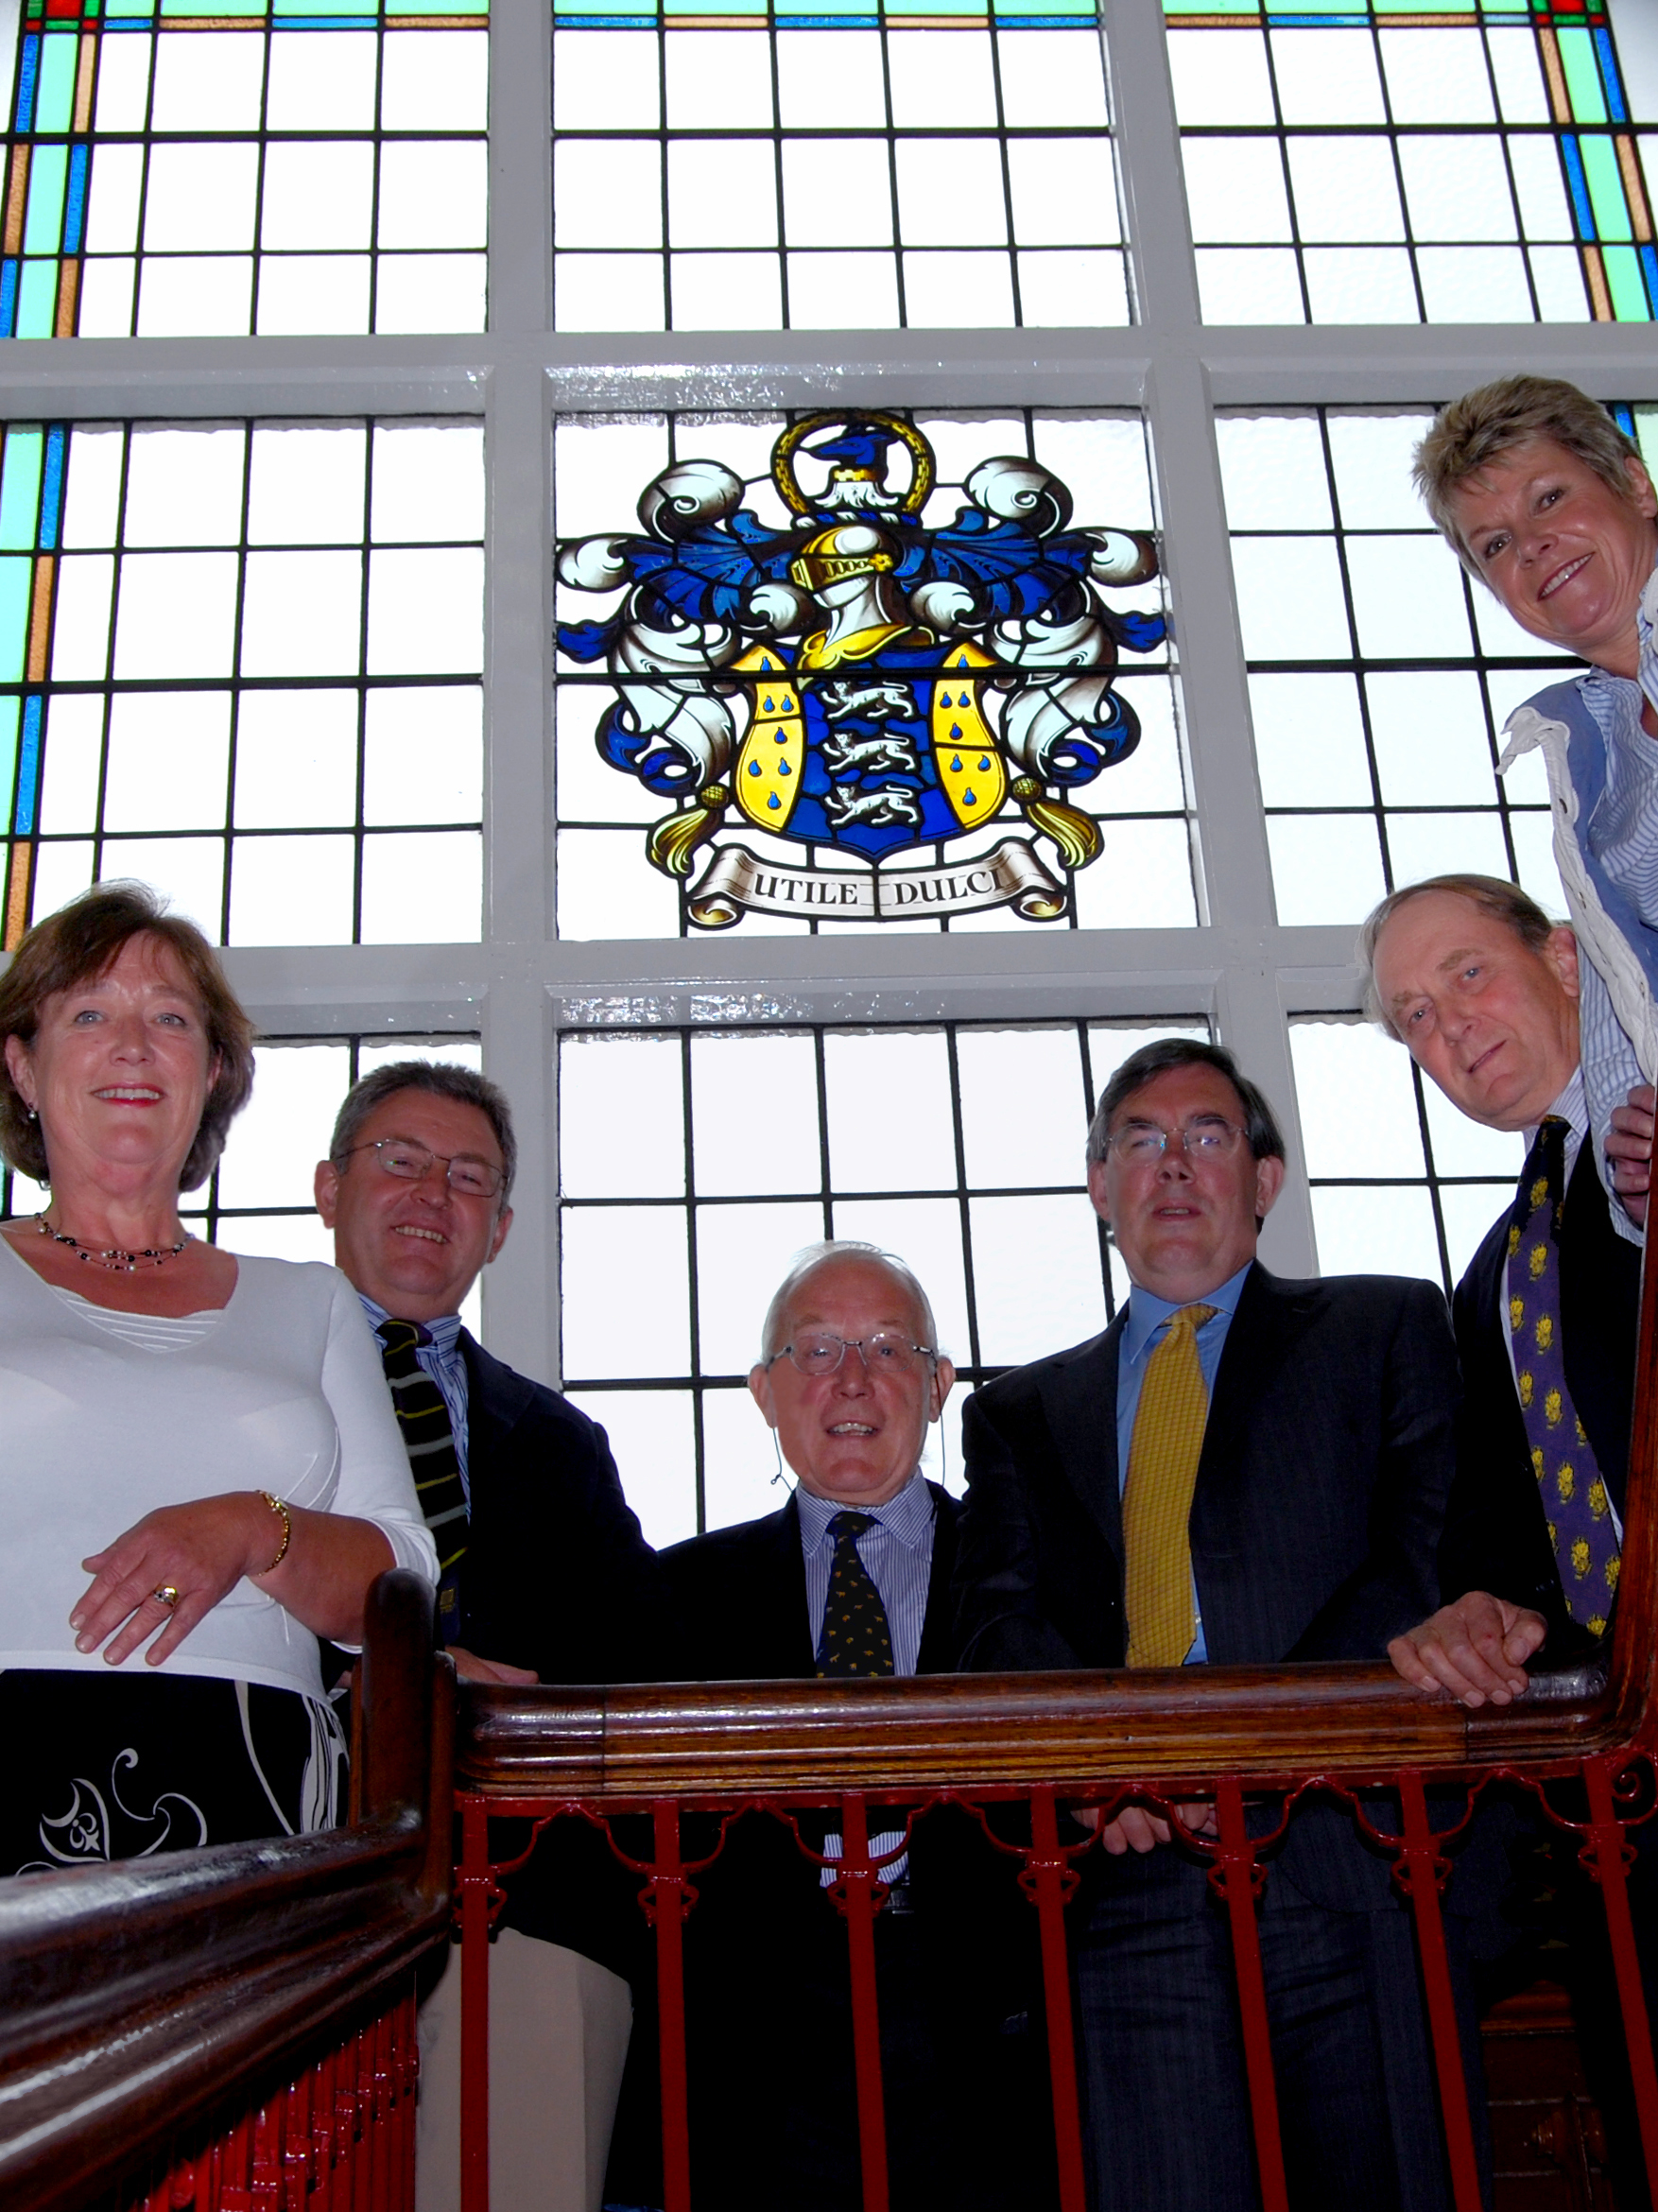 L-R Ros Barsley, Roger Mercer, Tony Burgess, Tim Brigstocke, Bill Madders and Jill Willows